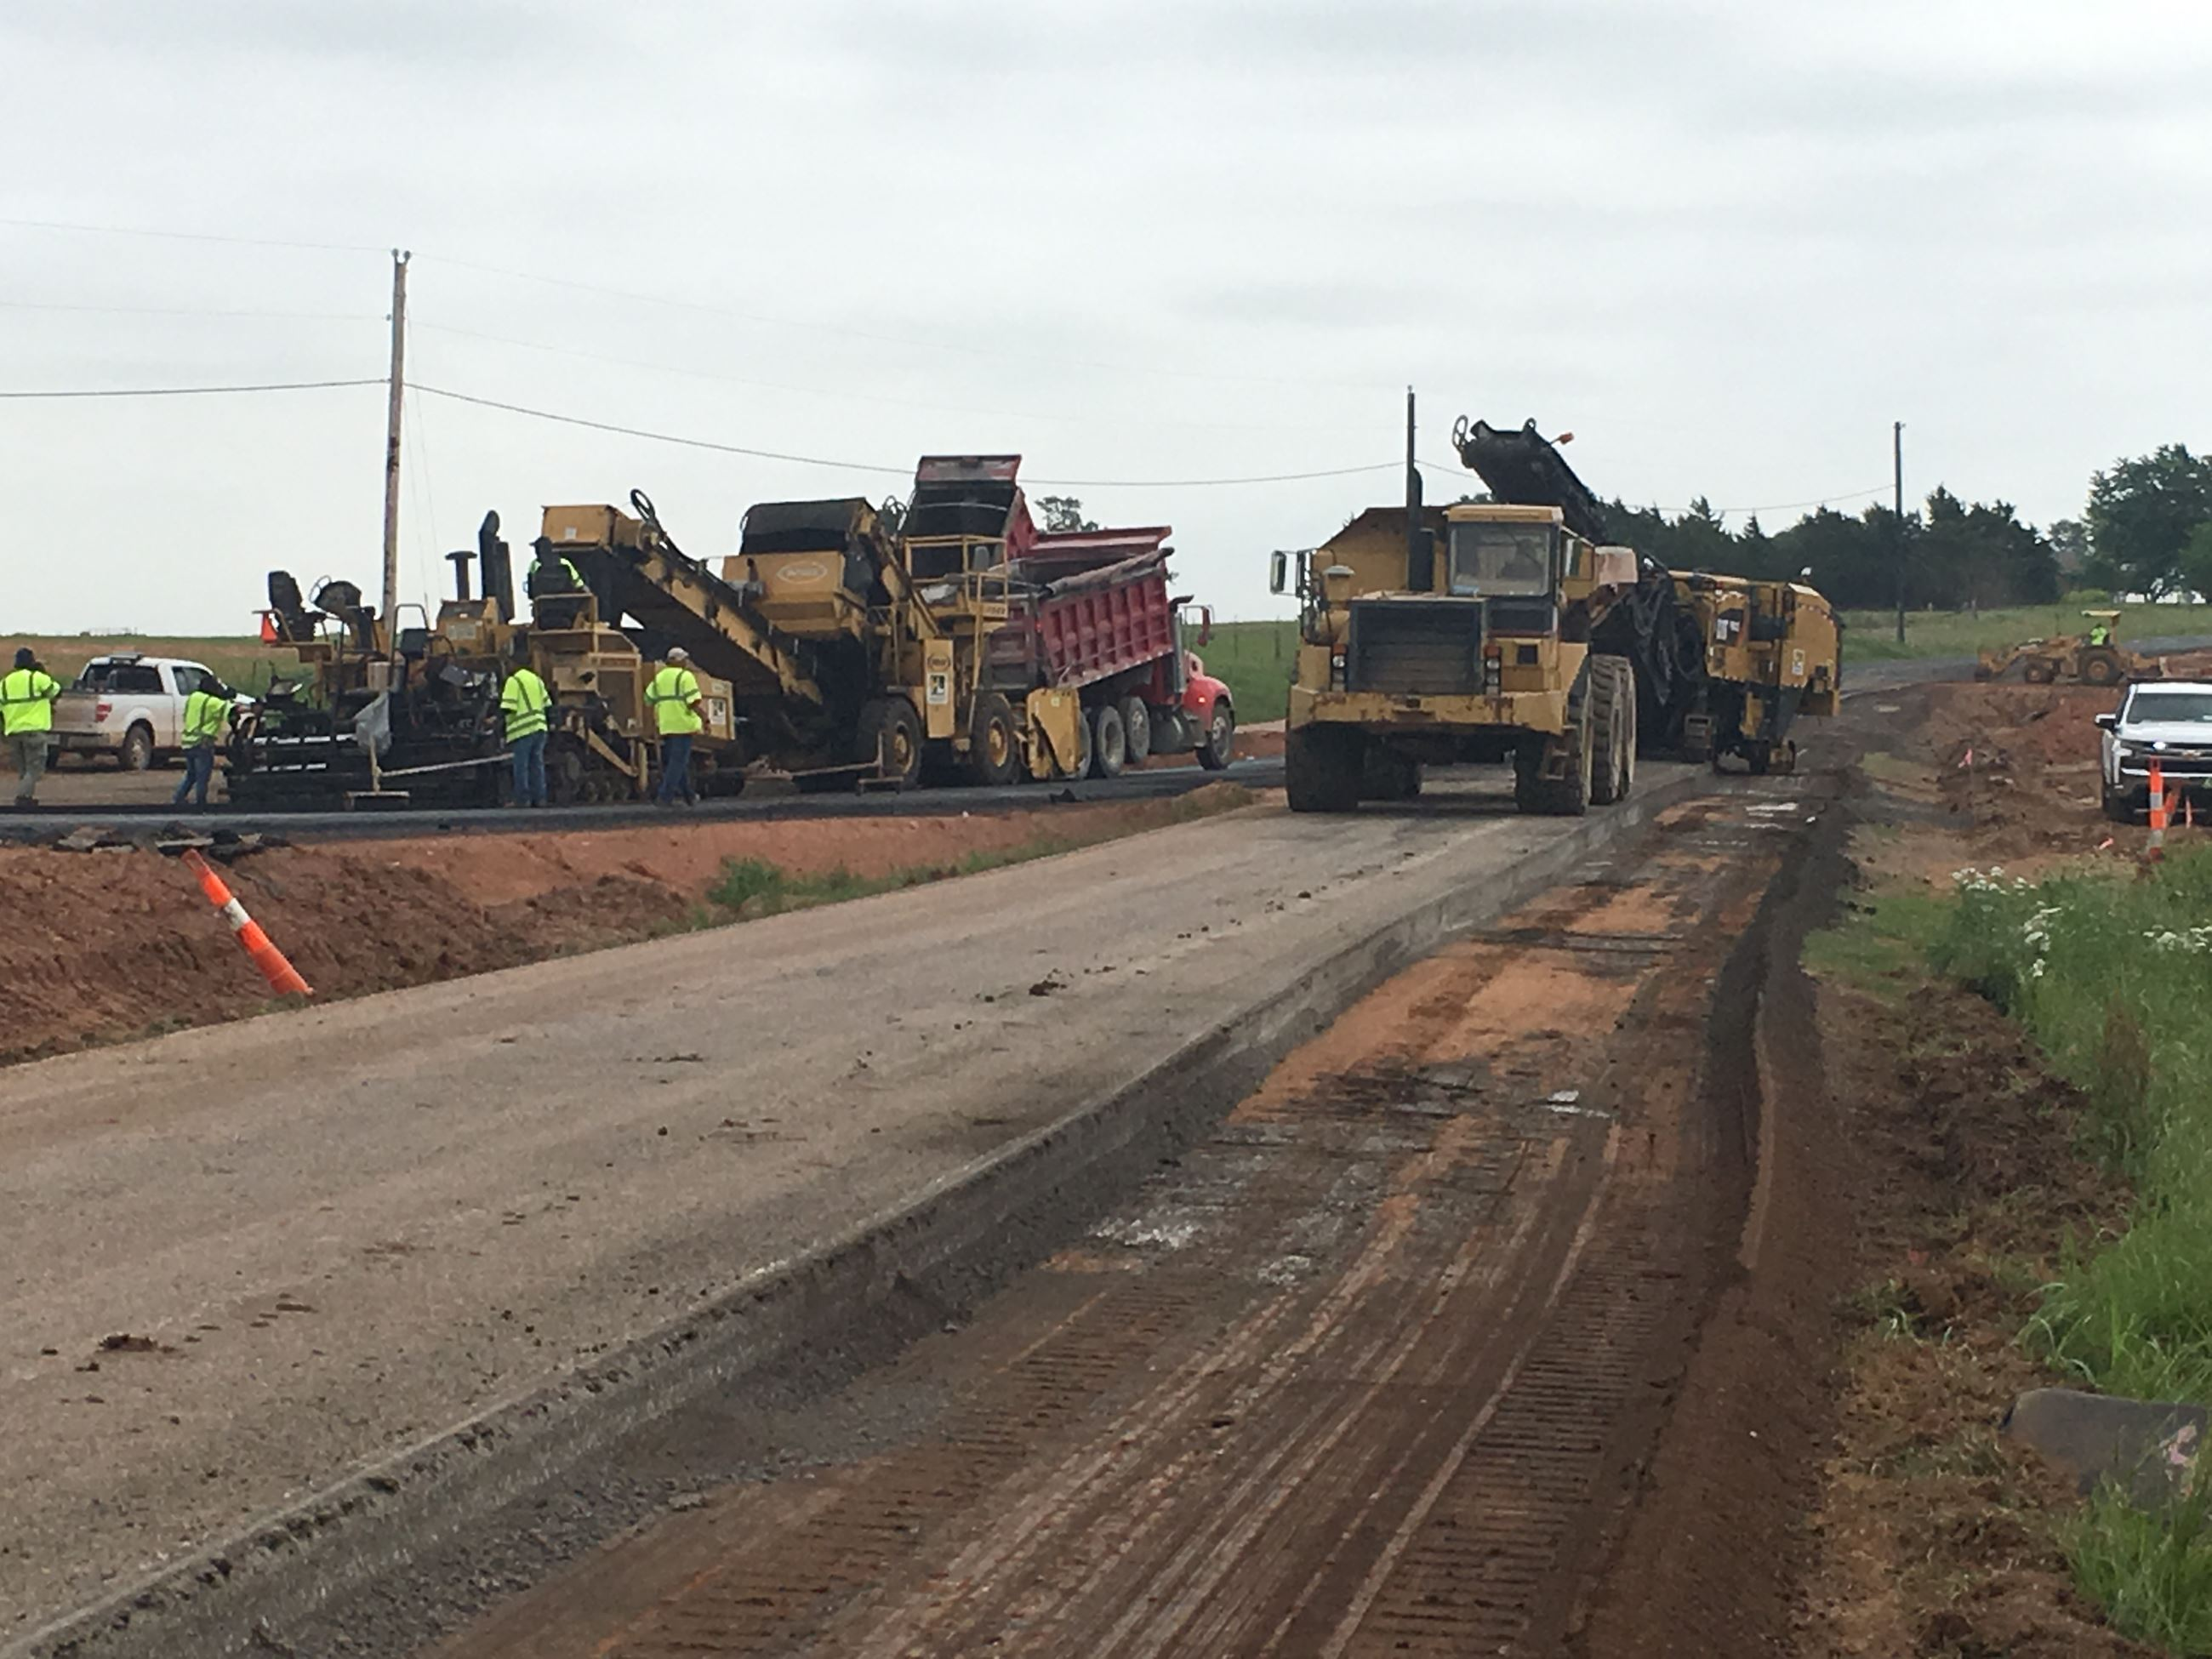 Paving contractors working on Arapaho Creek Project